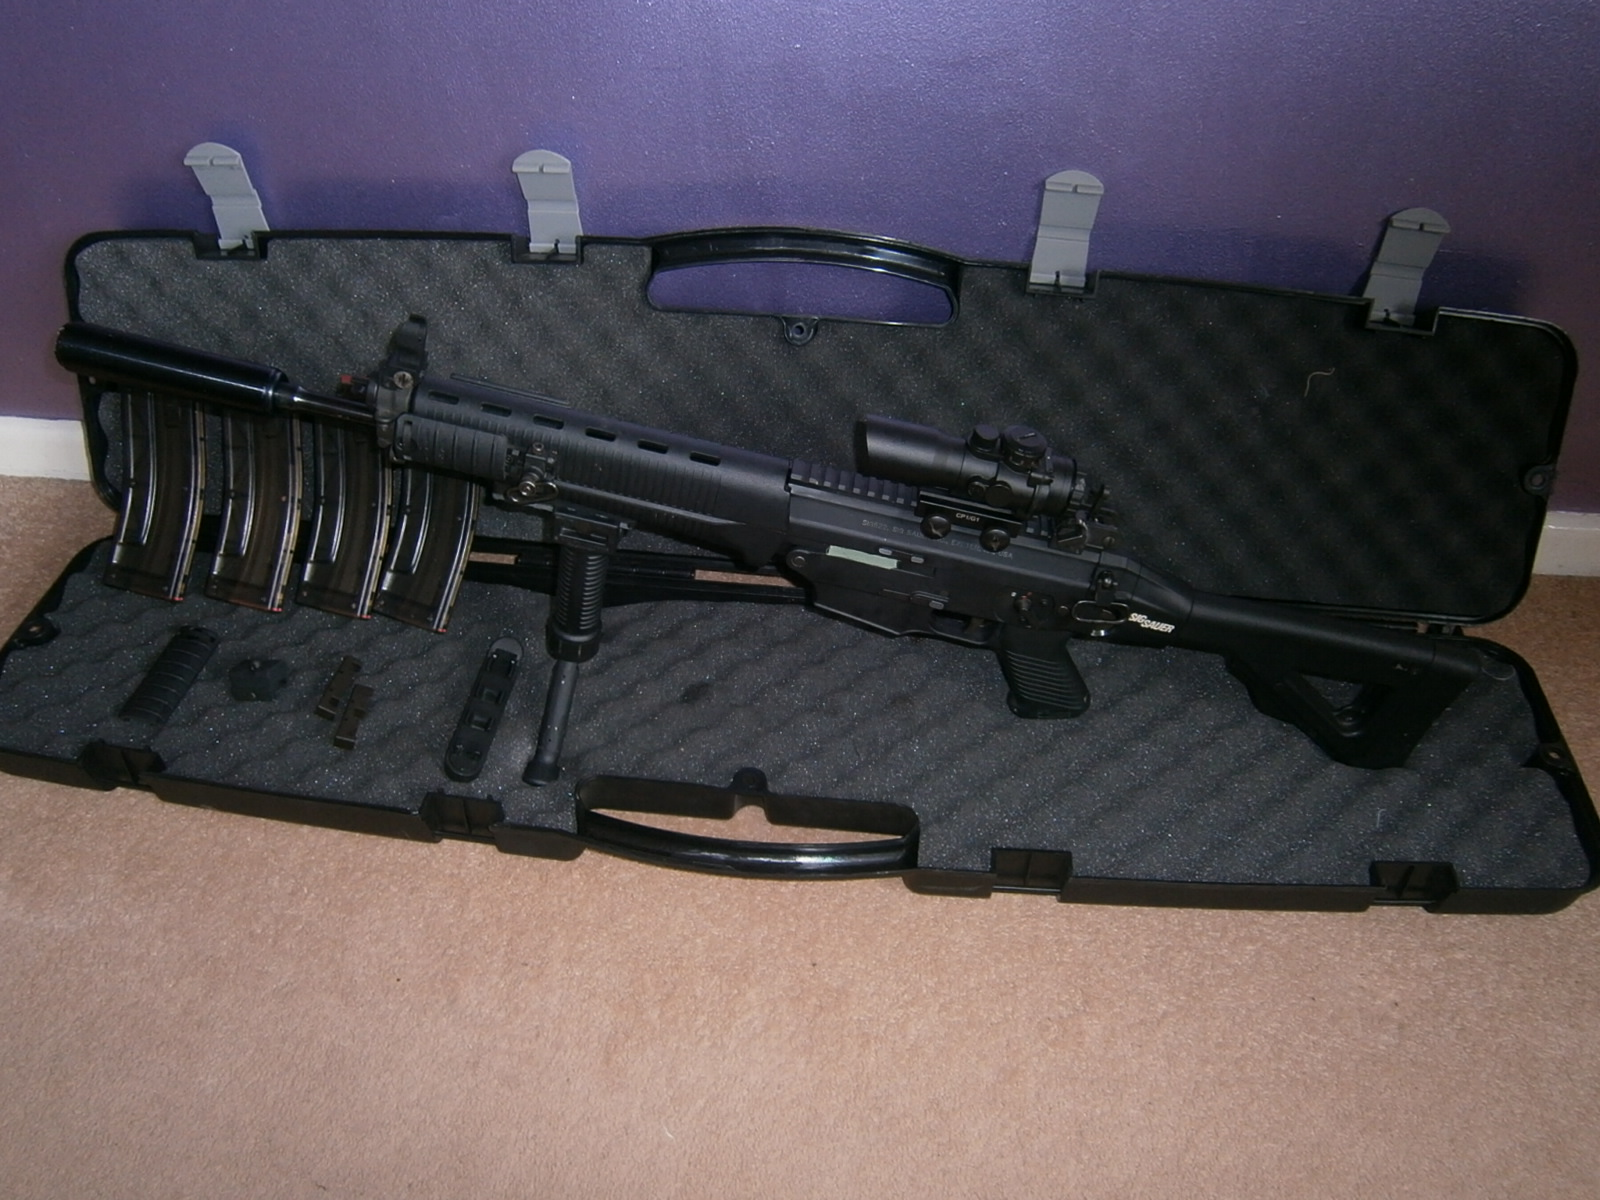 Sig 522 Rifle Accessories For Sale Free Adverts For Private